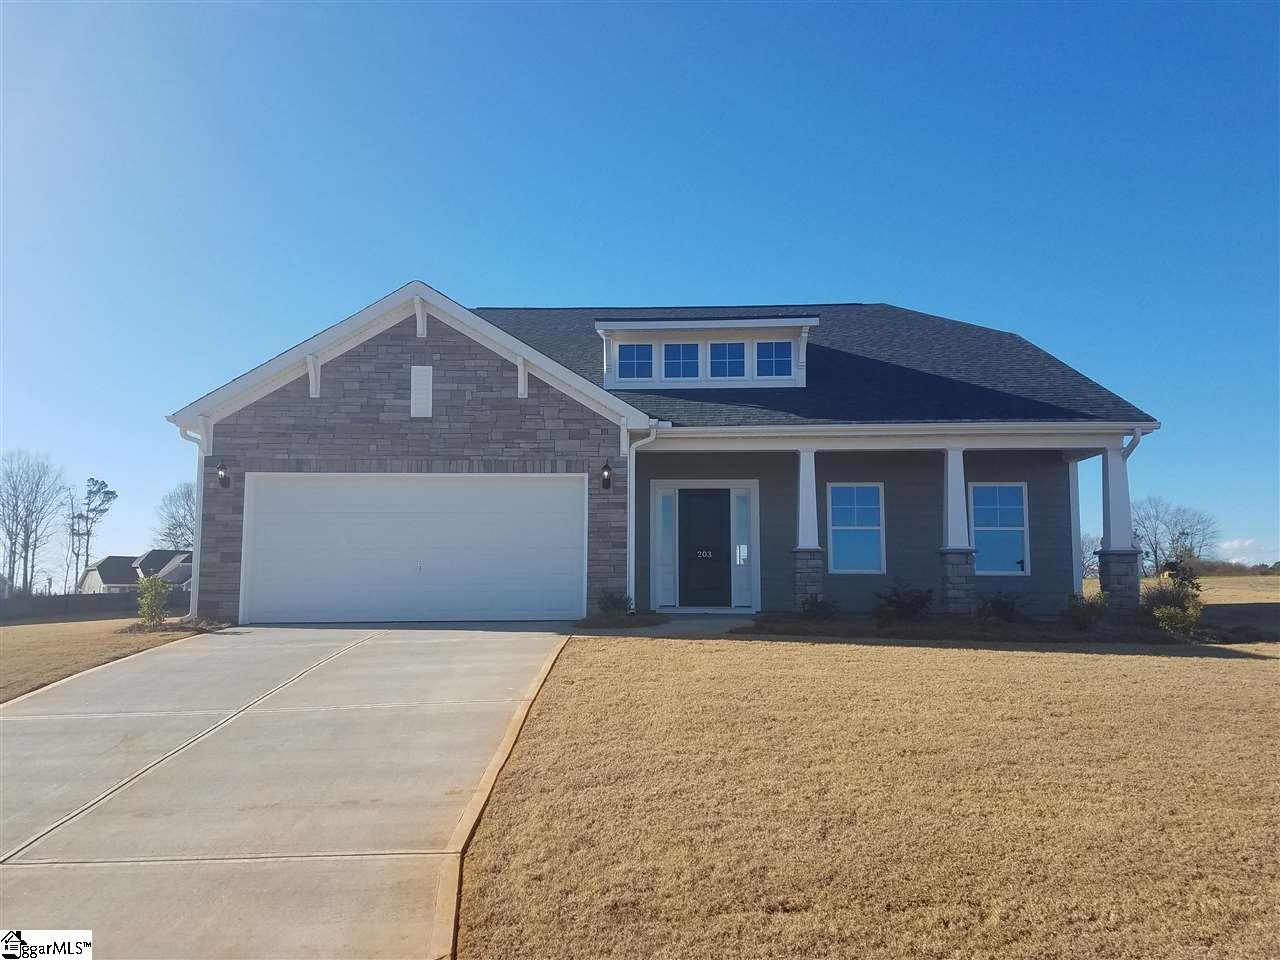 203 Harvest Moon Way,Easley,South Carolina 29642,3 Bedrooms Bedrooms,2 BathroomsBathrooms,Single Family (Detached),Harvest Moon,1326090